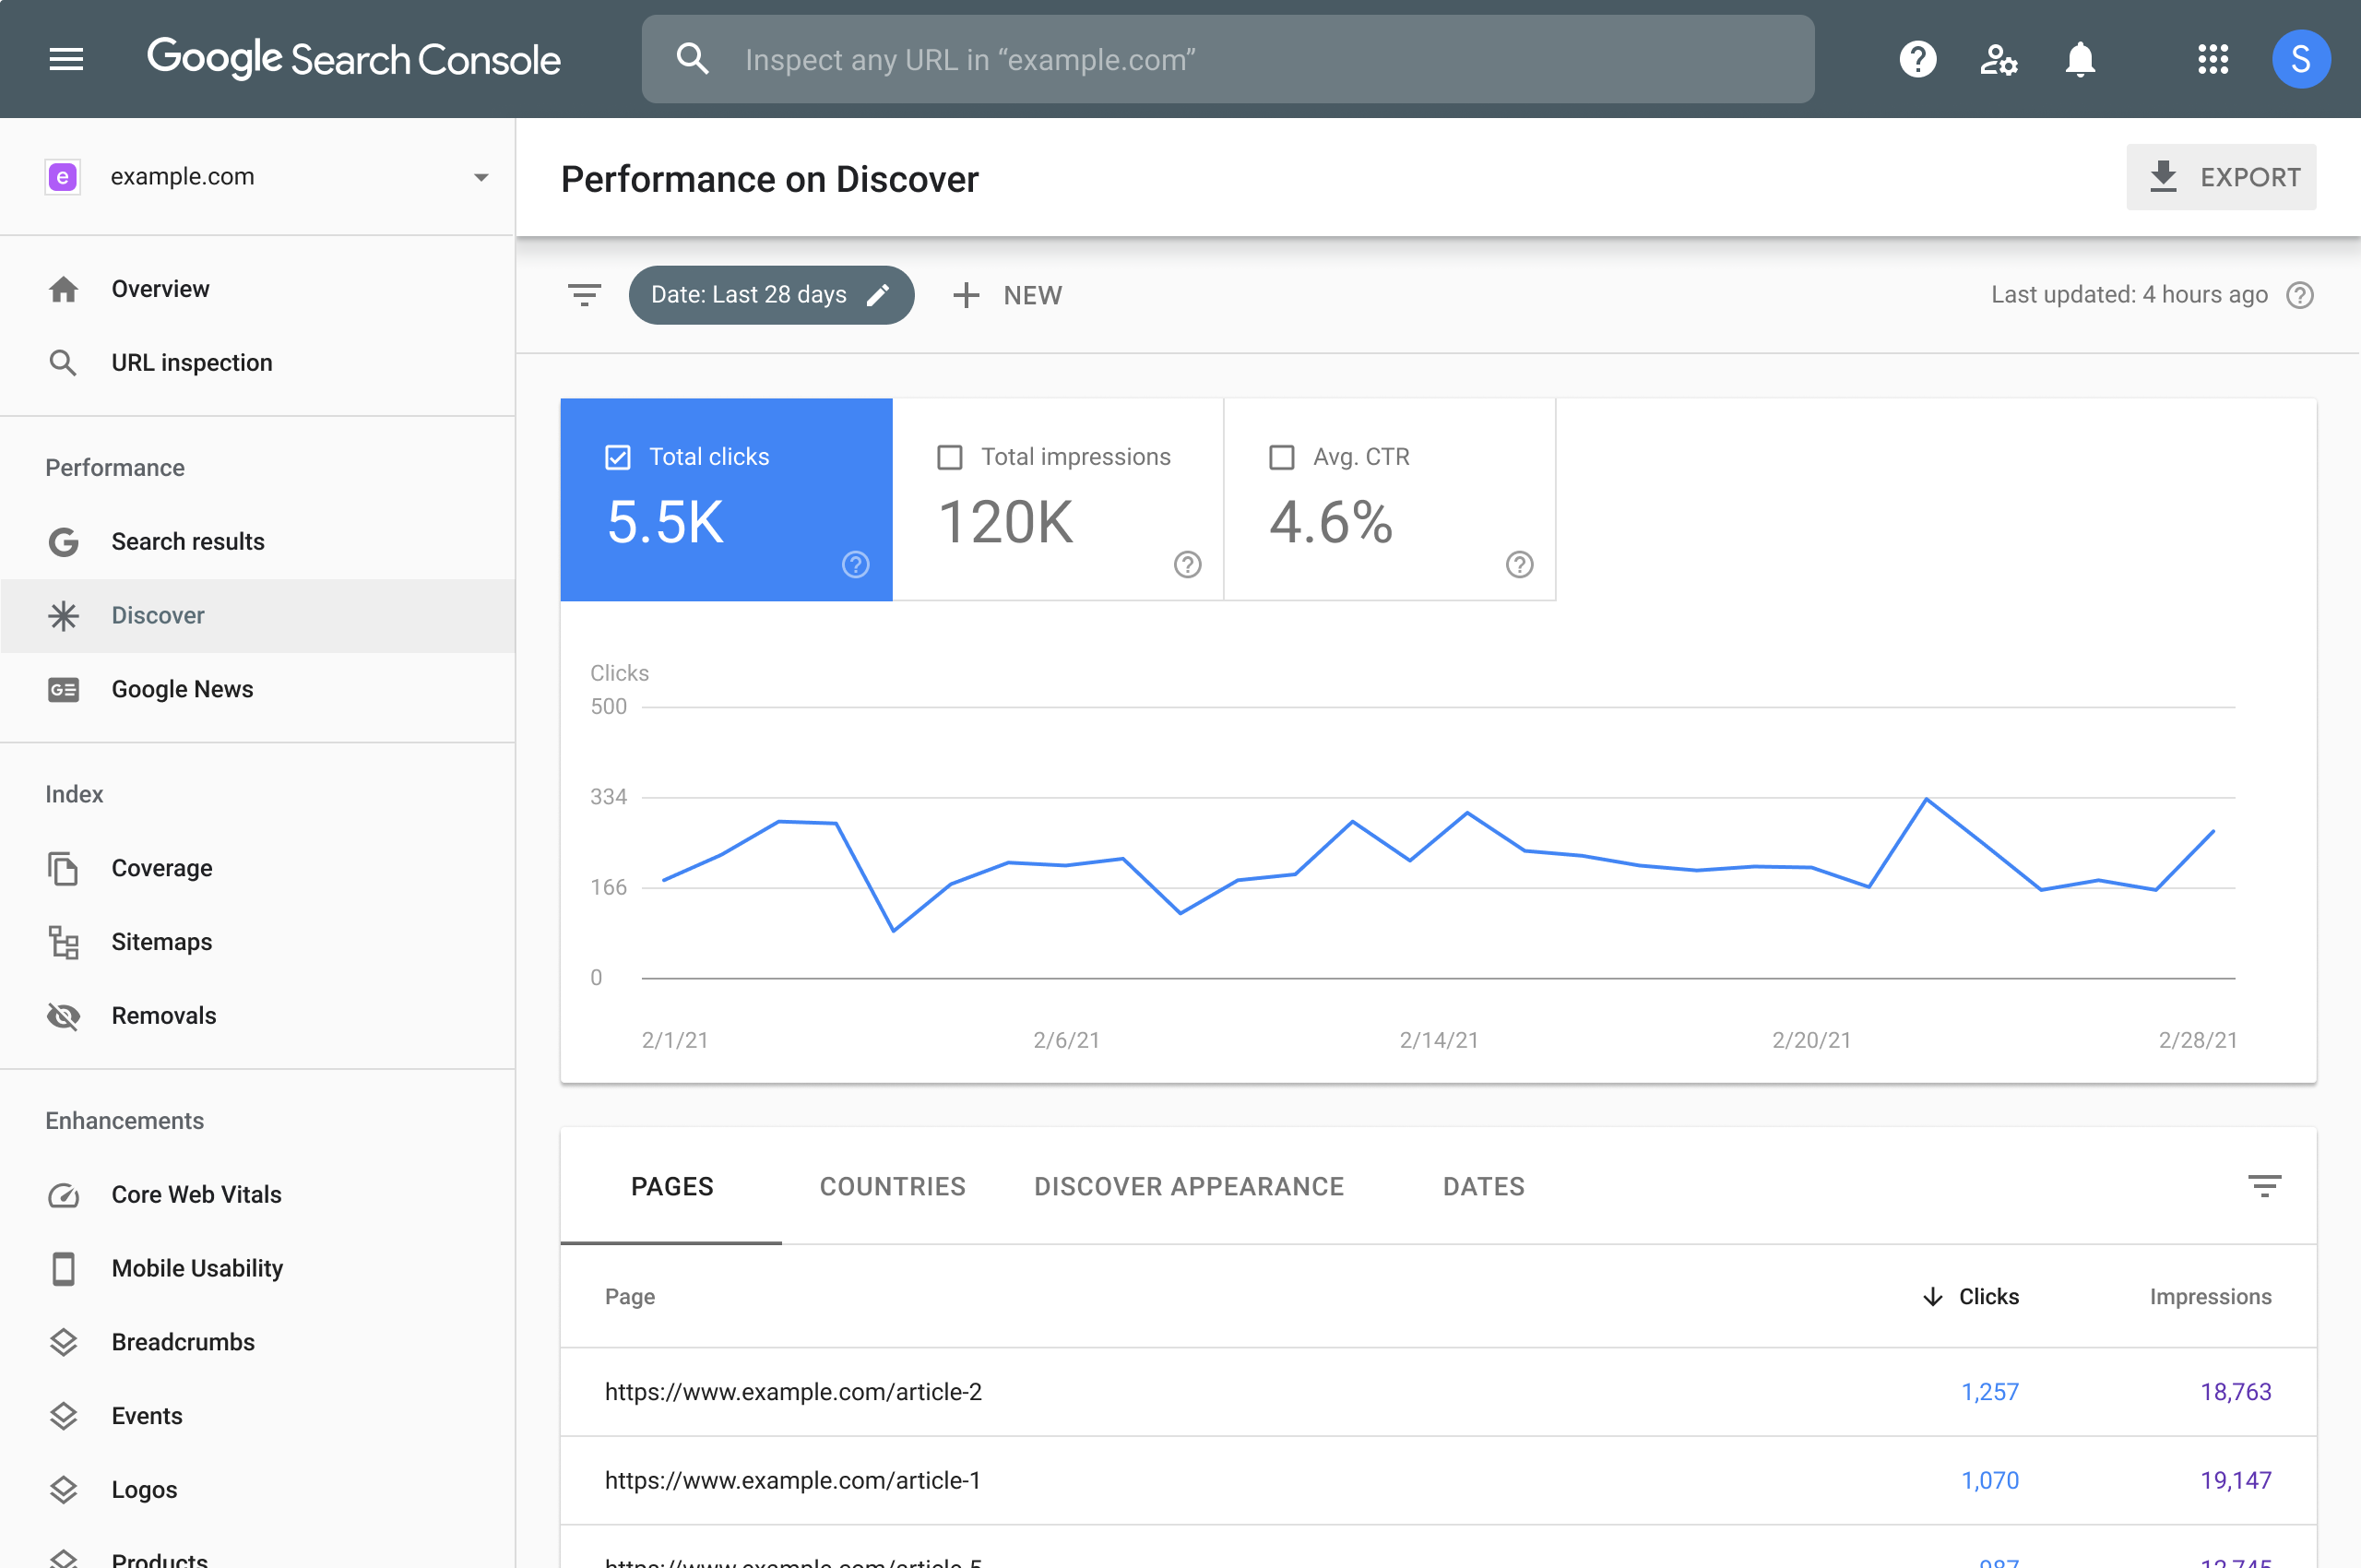 Google Search Console Discover performance report